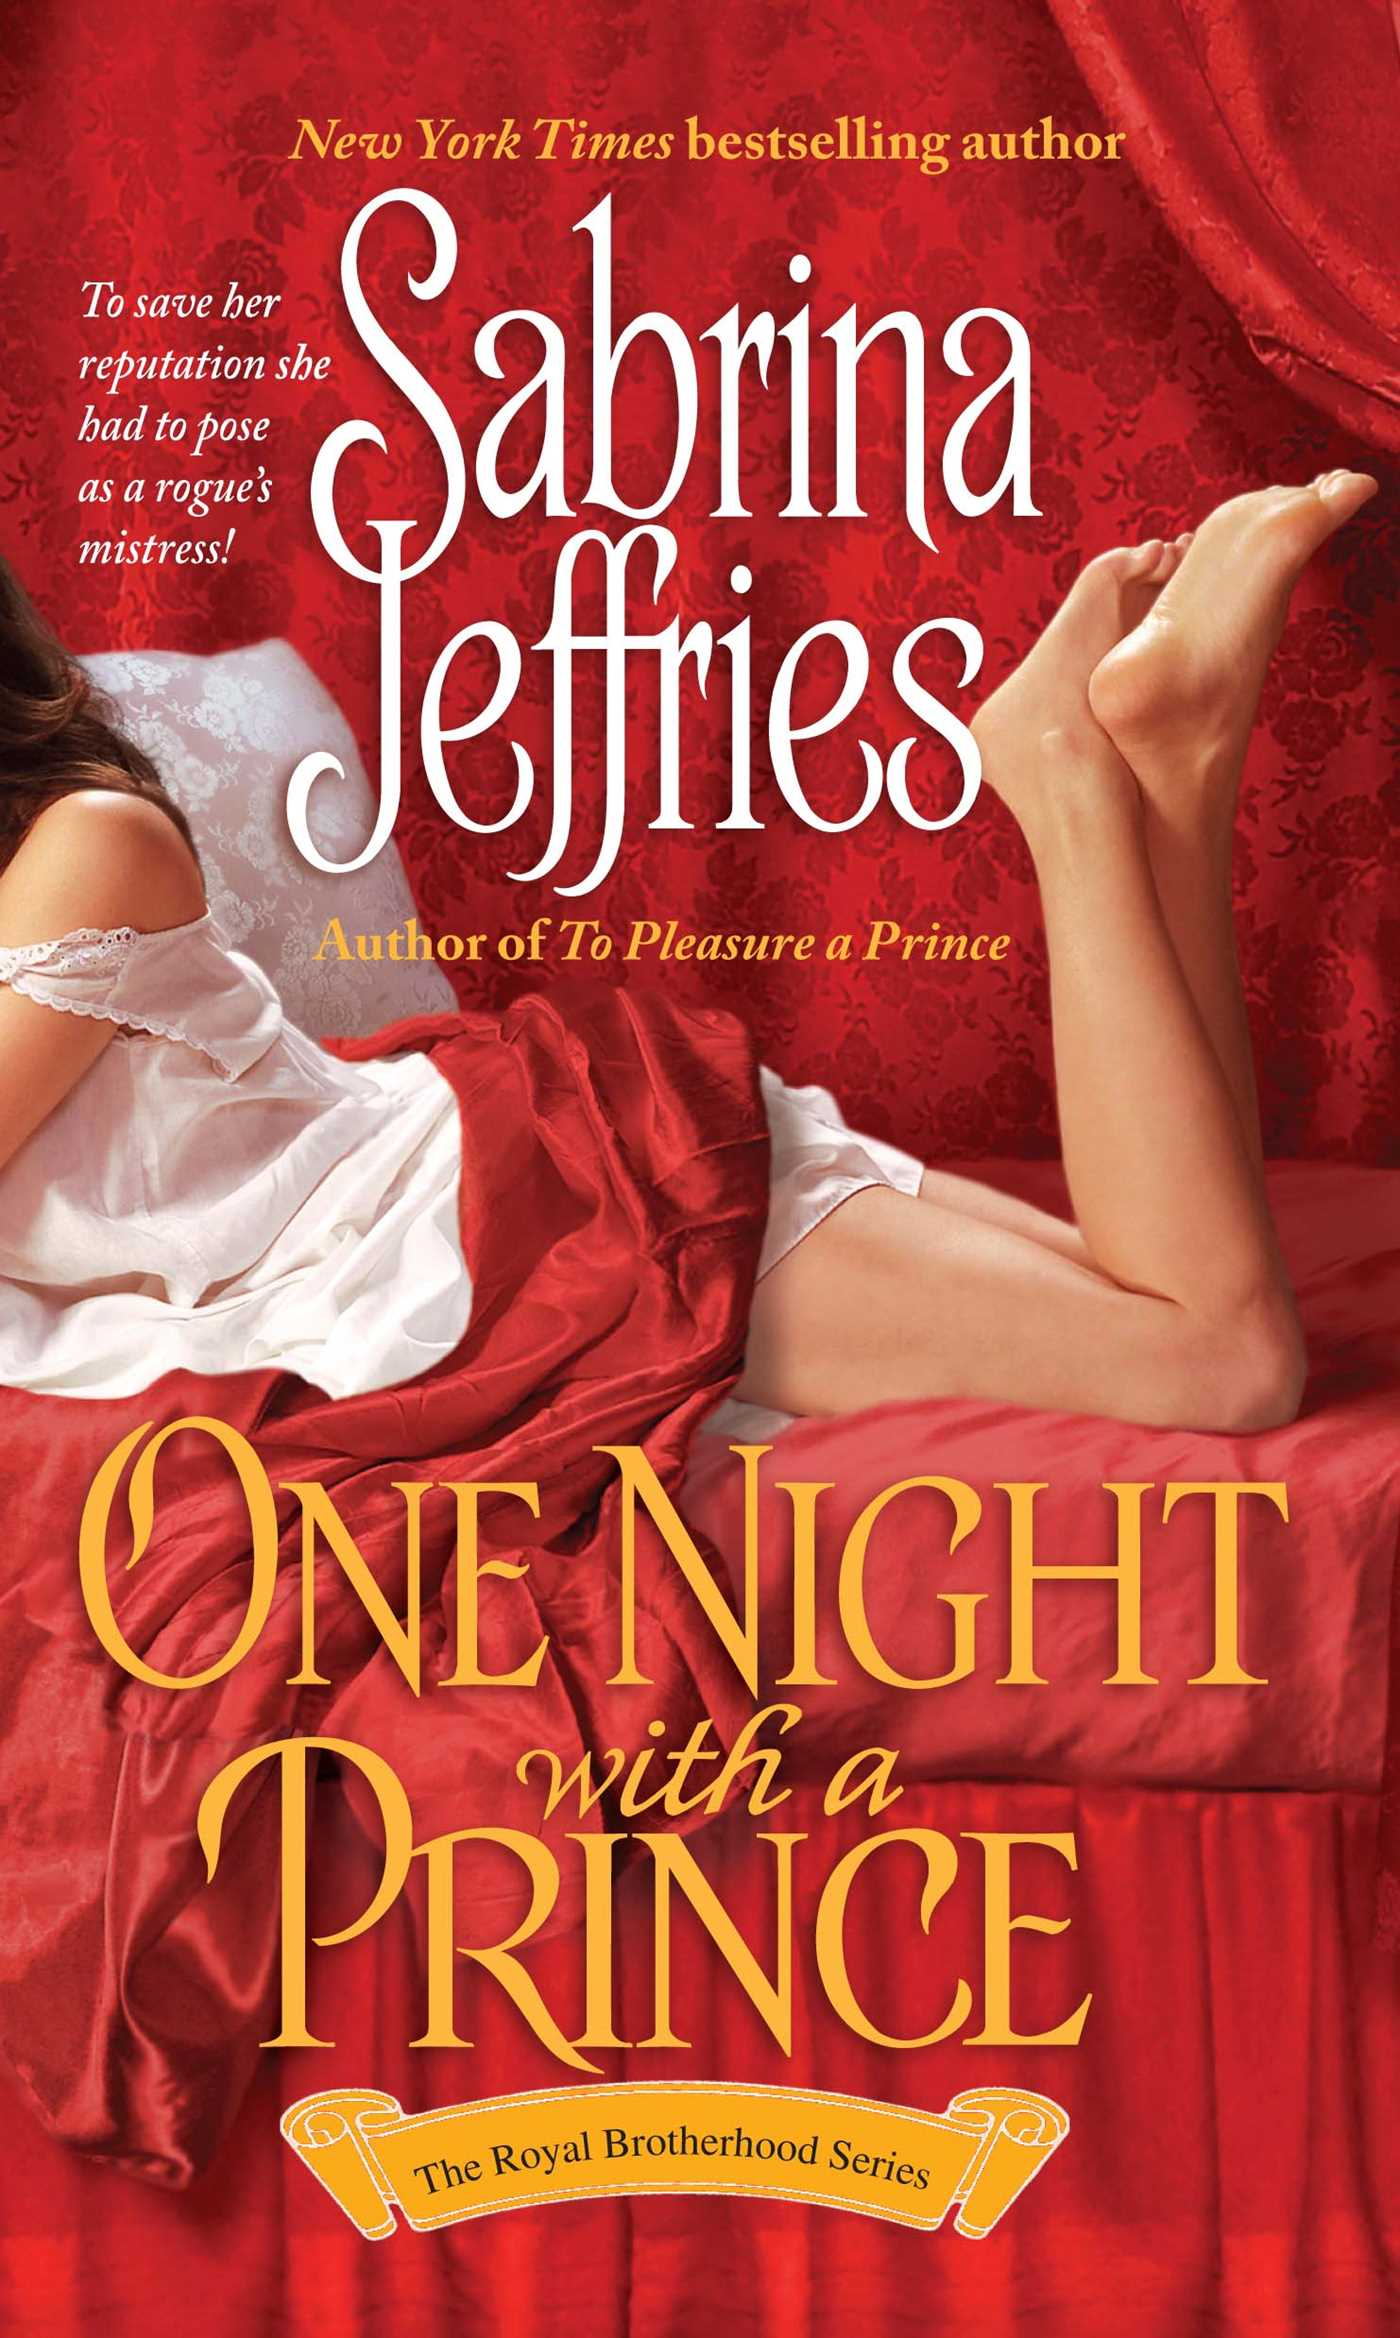 One night with a prince 9781416510277 hr